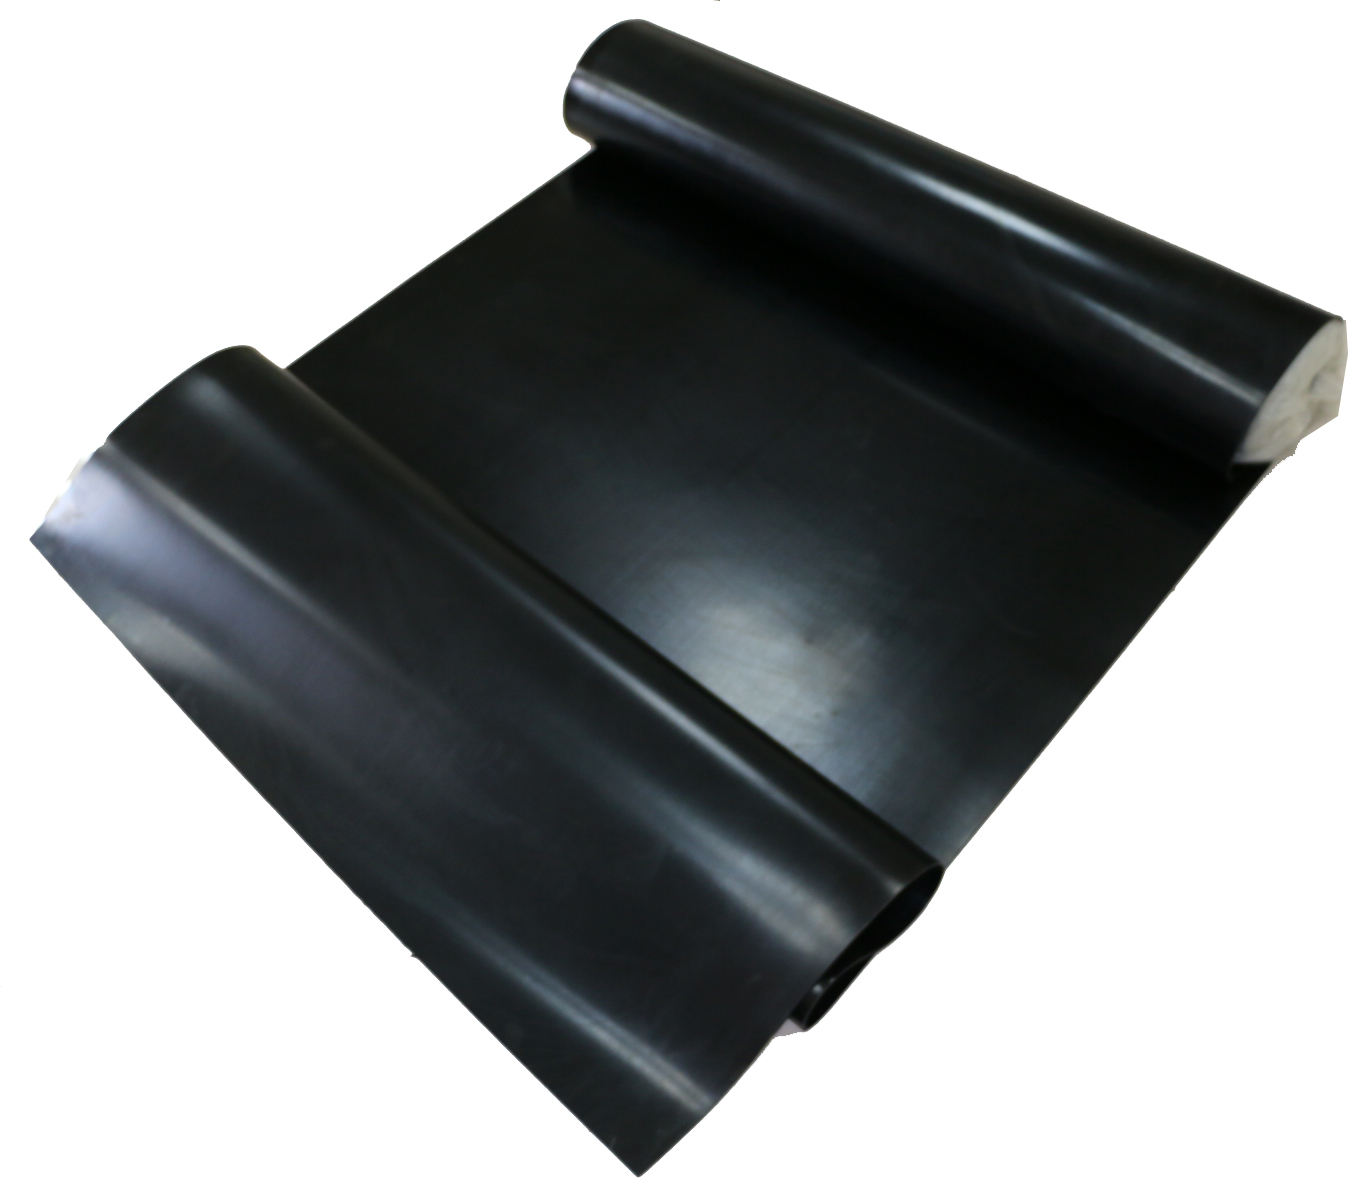 EPDM rubber sheets has excellent resistance of ozone, ketones,acids water and alkalinges is widely used in